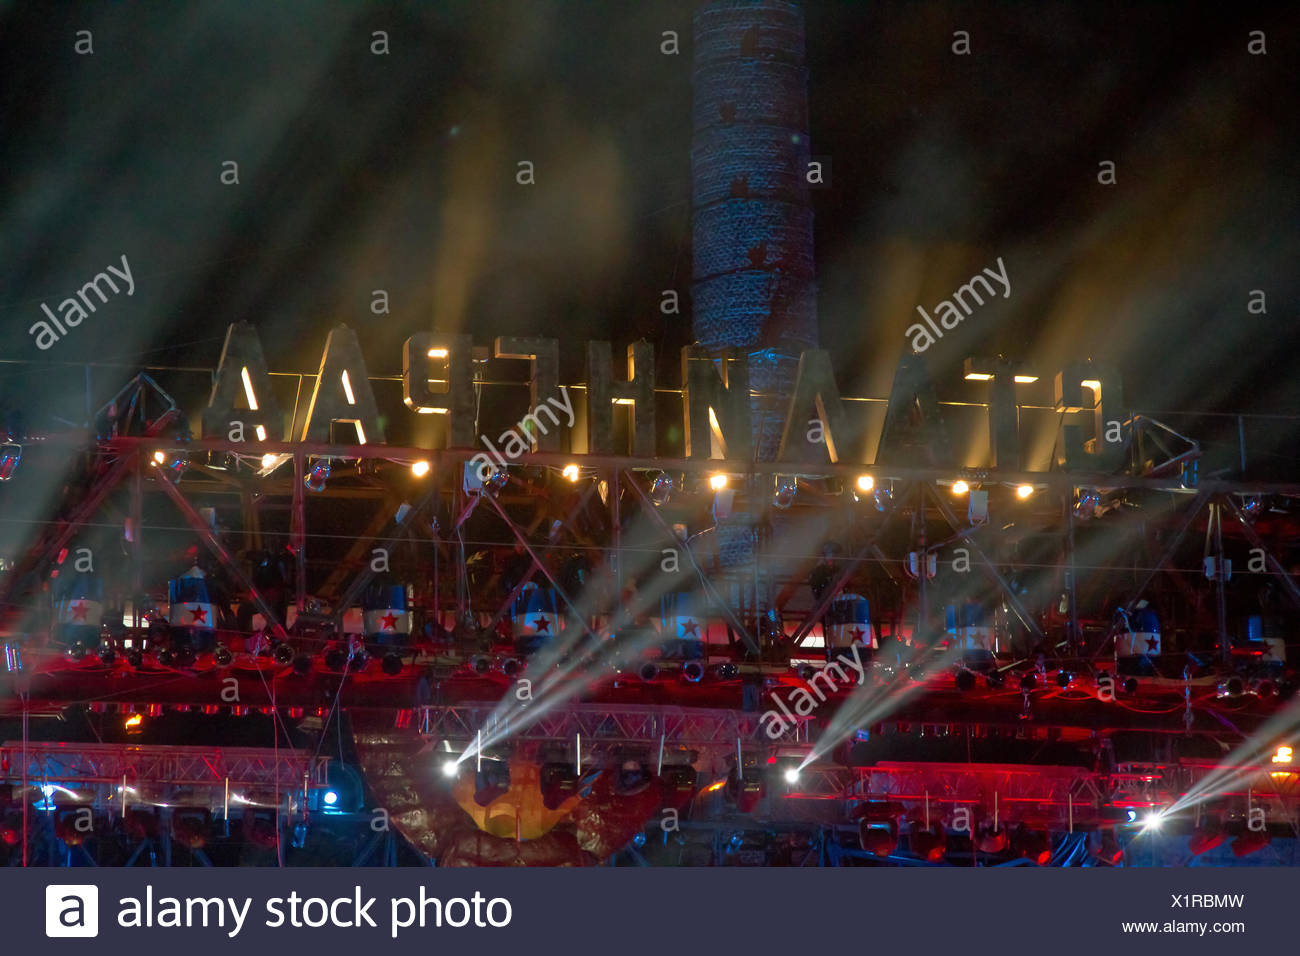 The scene Bike show Stalingrad with the lights mad - Stock Image